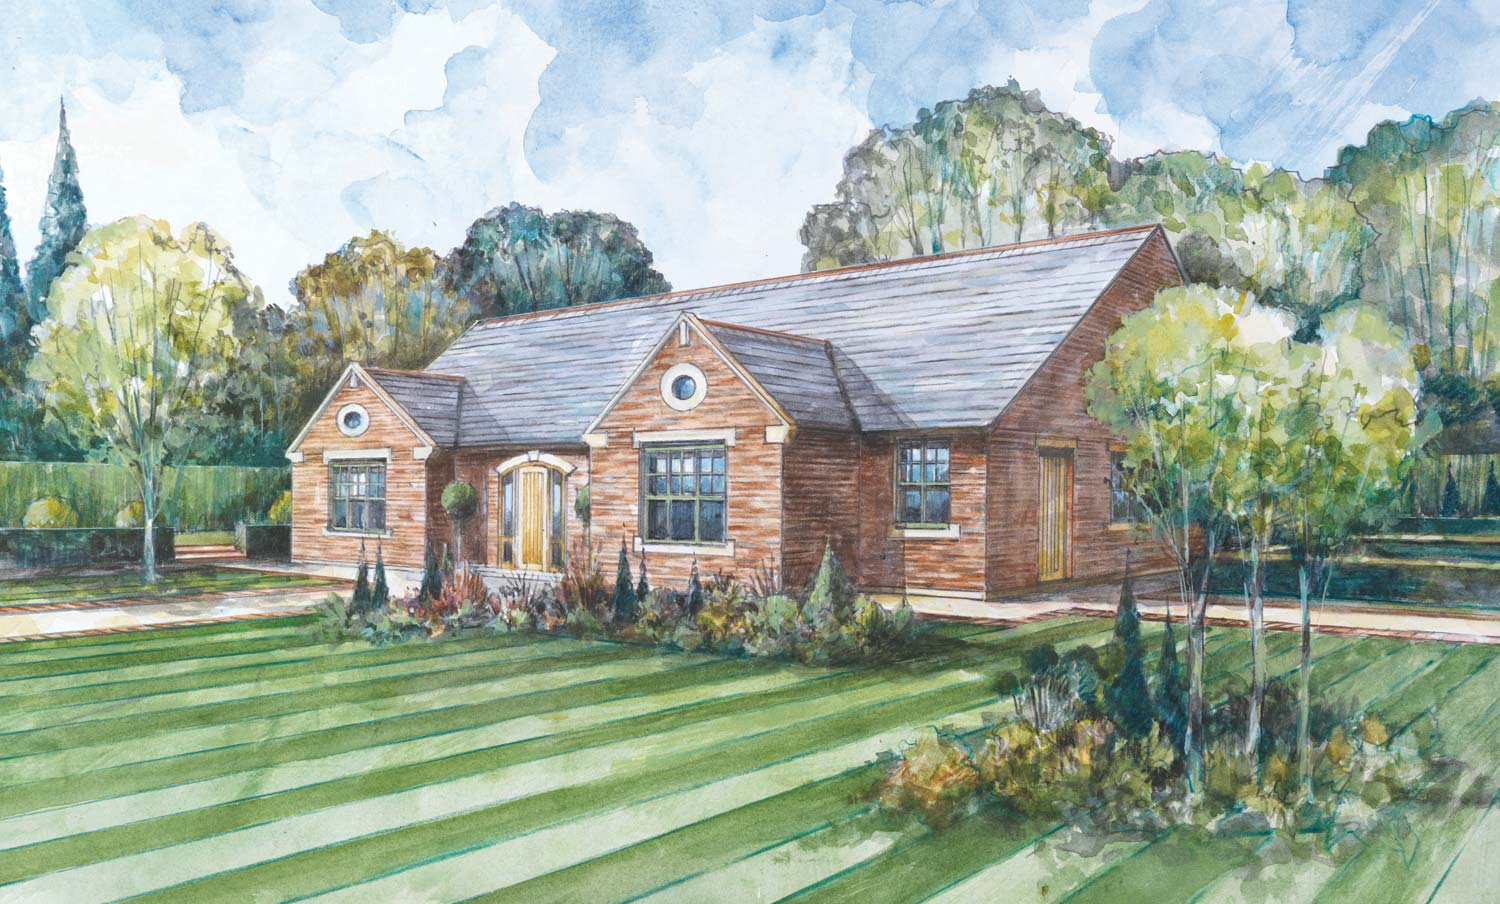 Exterior view of the The Hollyhock 5-bedroom bespoke detached bungalow